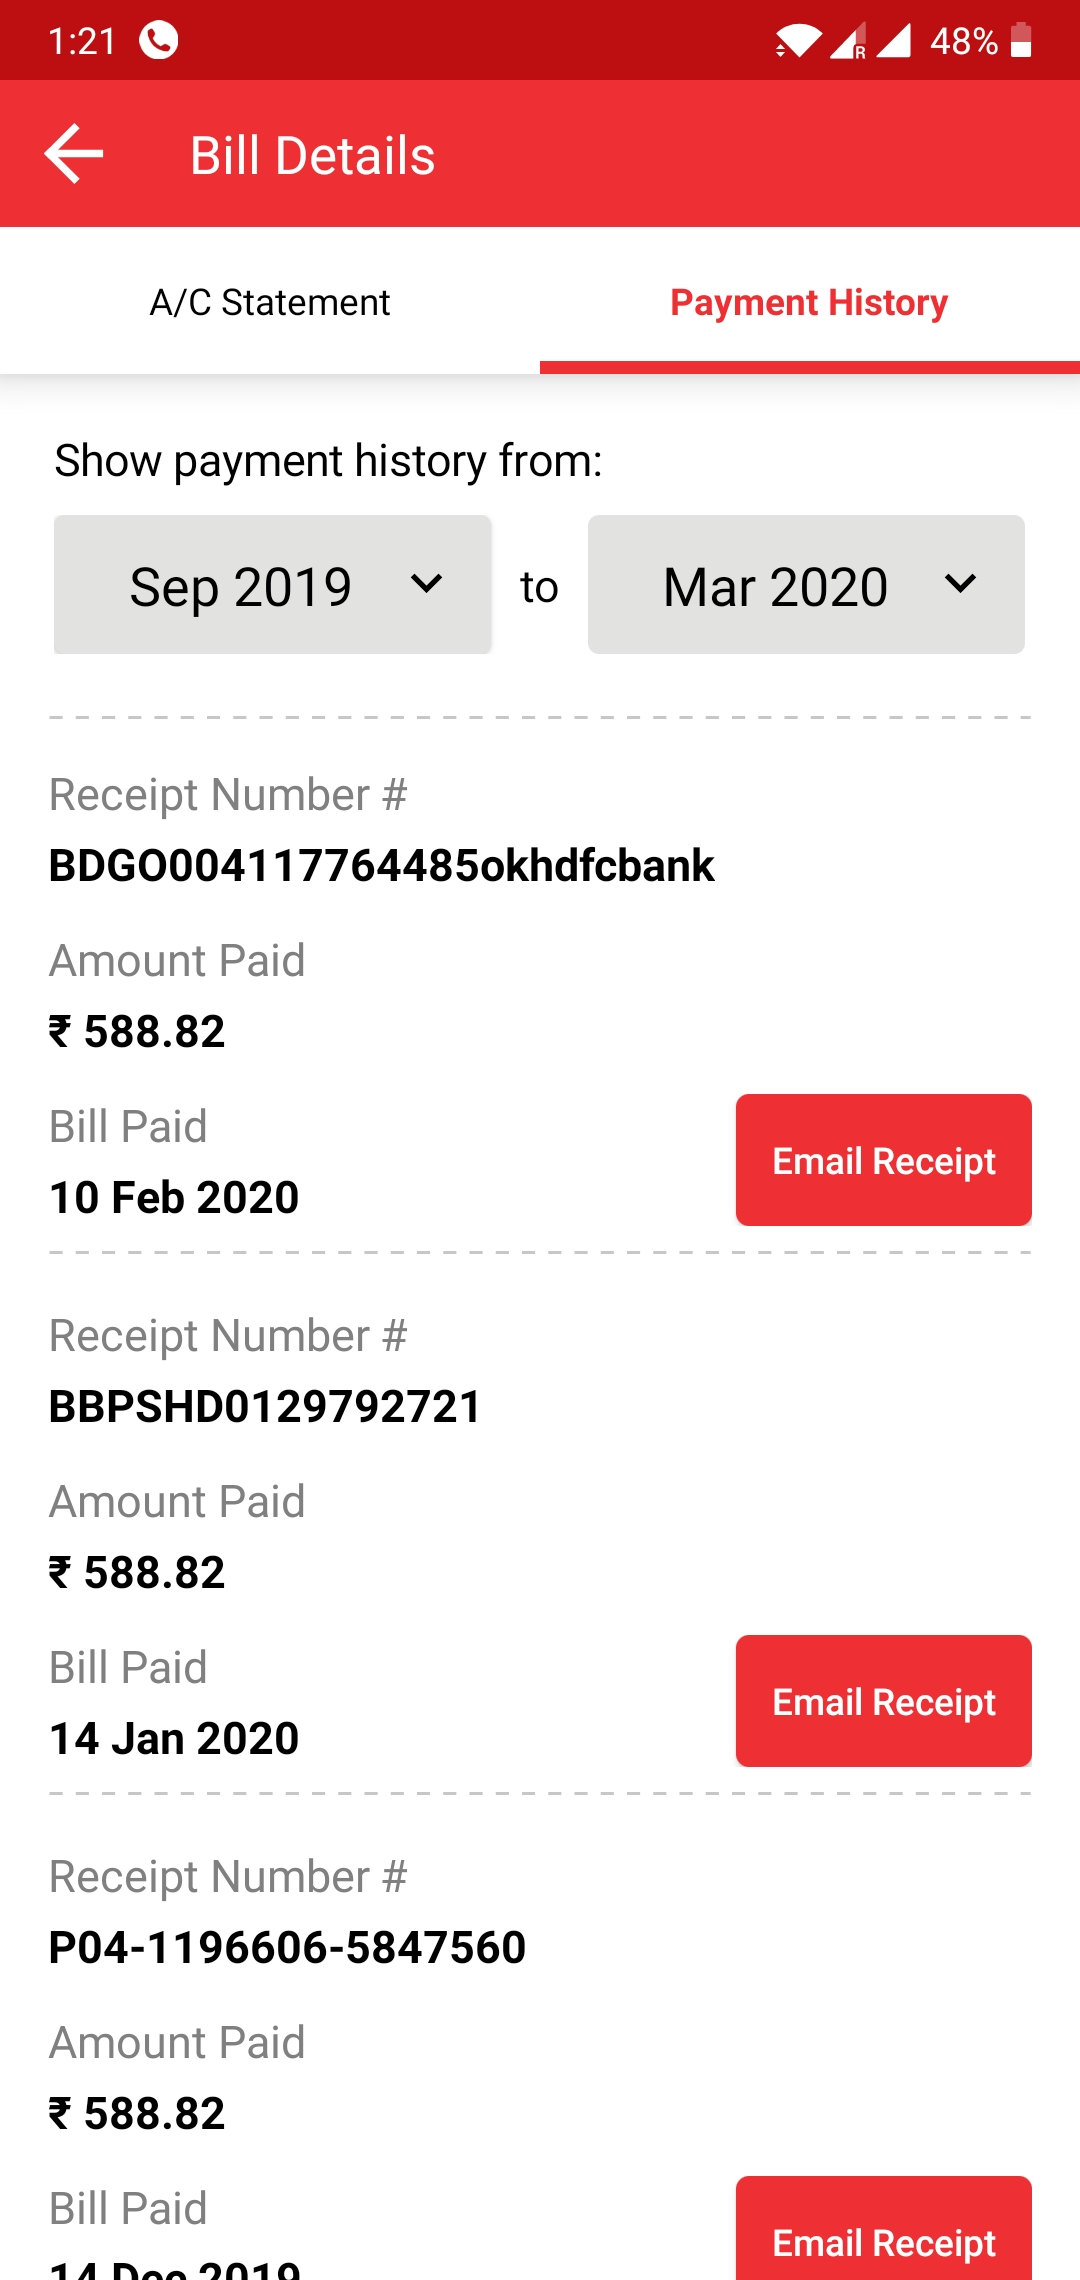 Late payment charges added though payment made in time